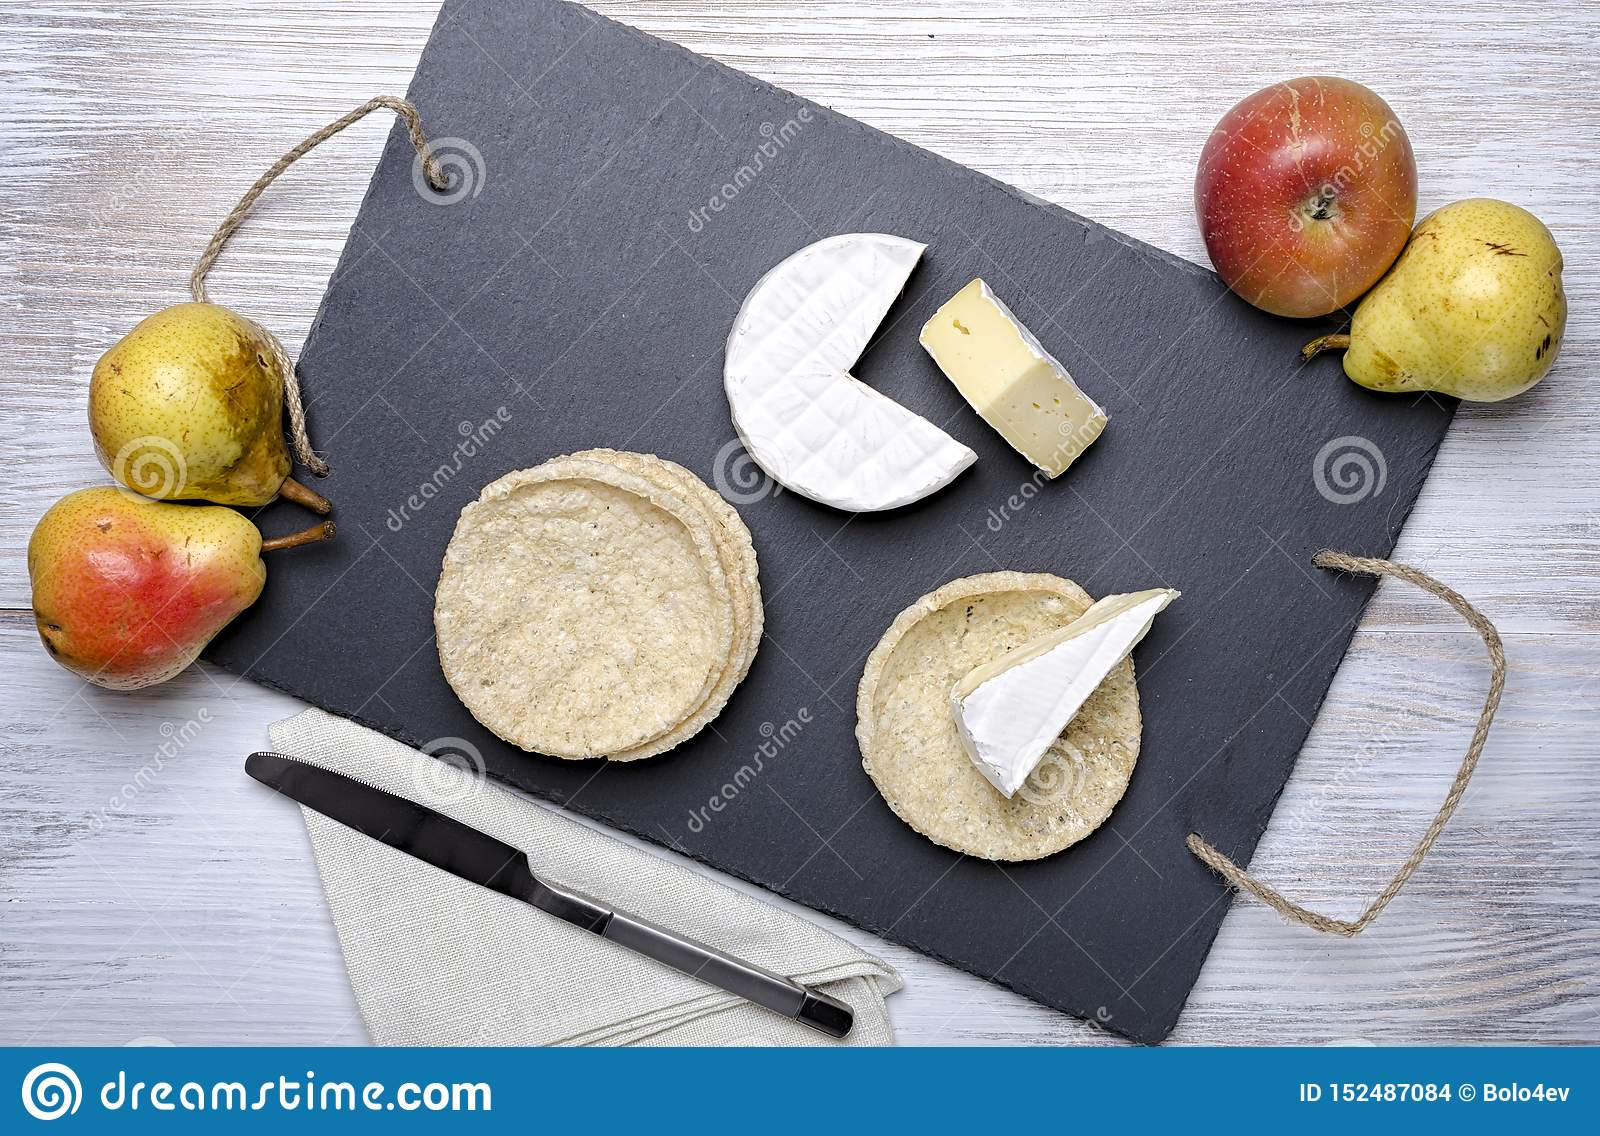 Brie de famille cheese and small round loaves lie on a slate Board on a white wooden background, round cheese, sliced cheese on